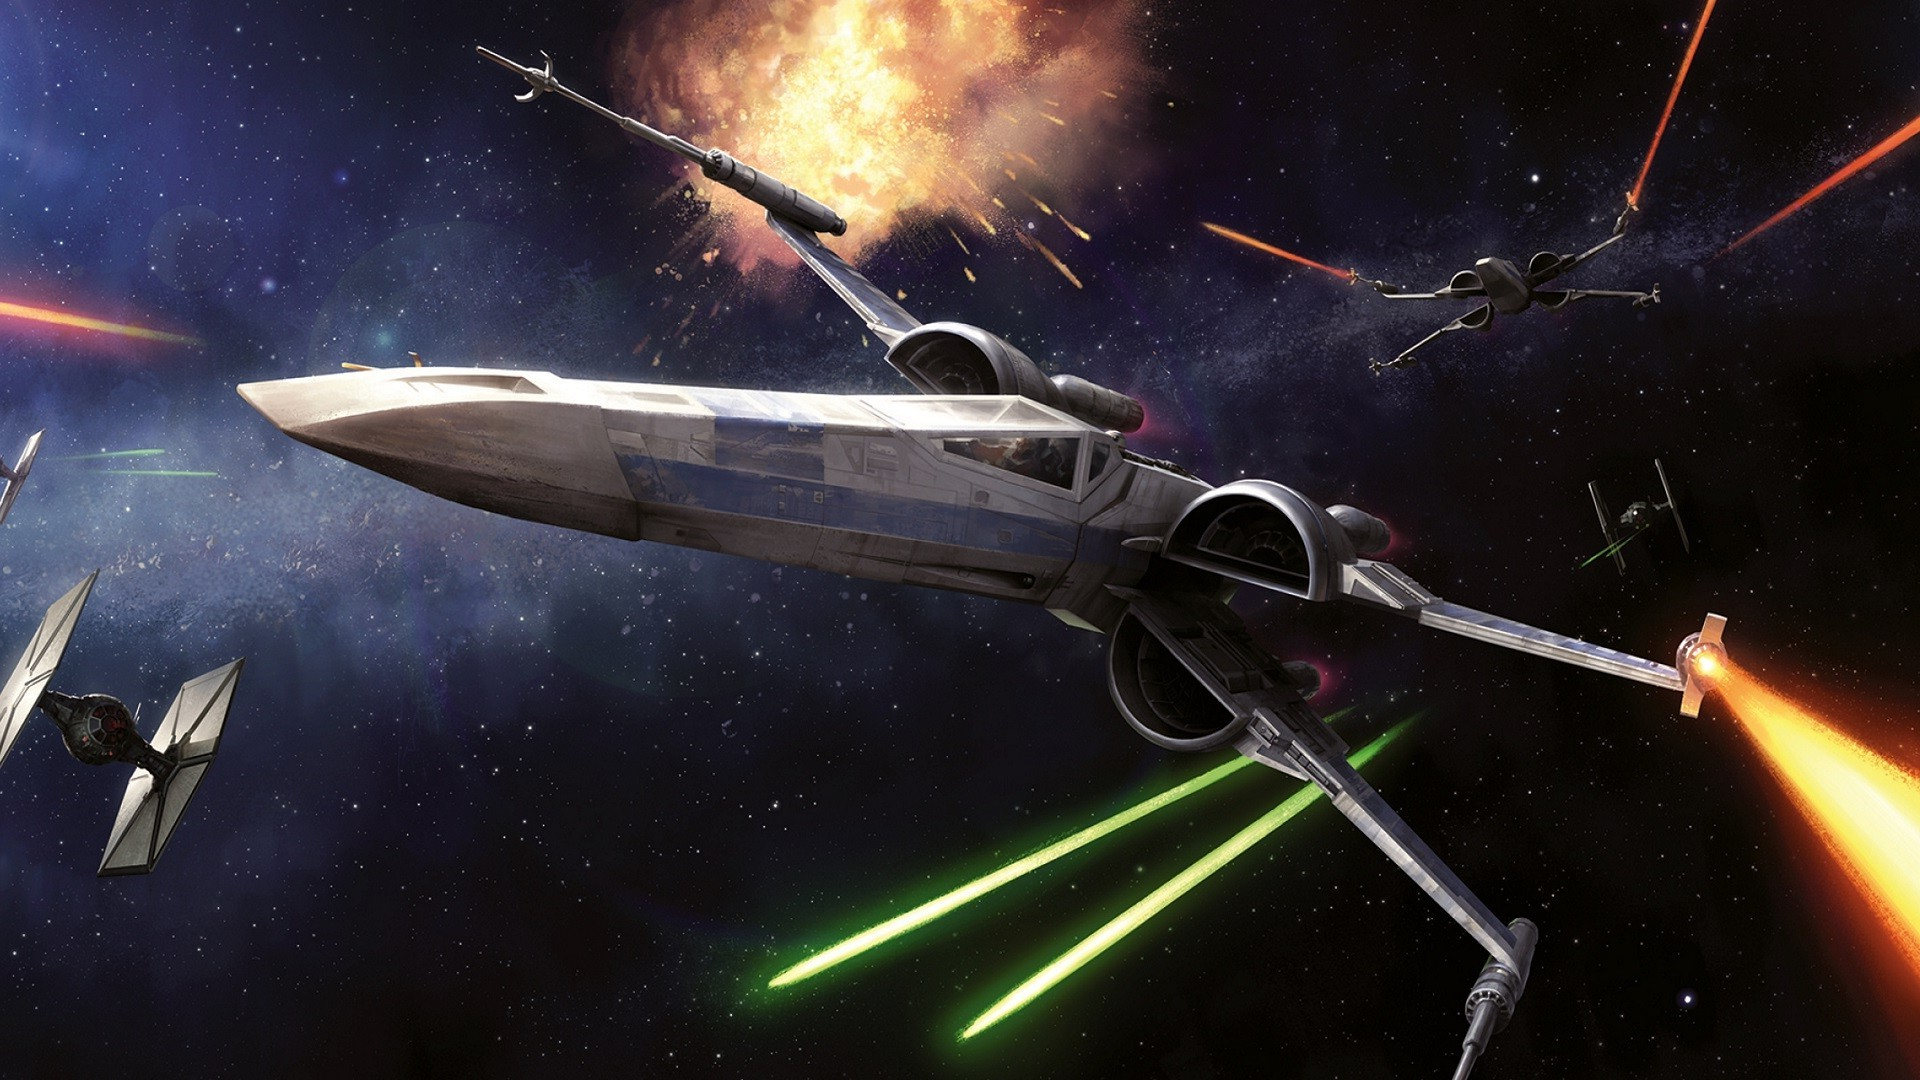 Star Wars, Space, Spaceship, X wing, Laser, Lasers, Science Fiction